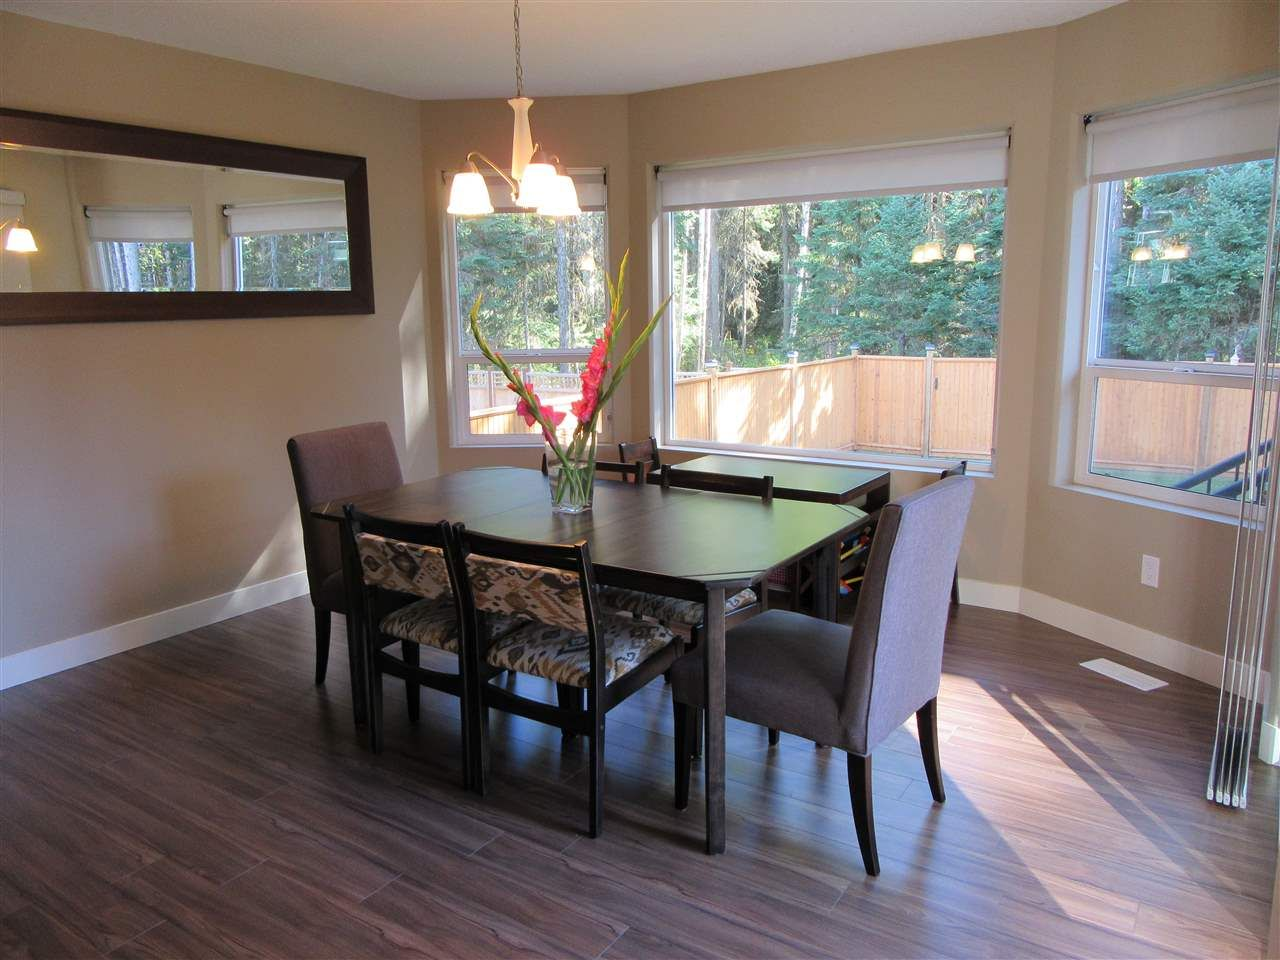 Photo 6: Photos: 8041 STILLWATER Crescent in Prince George: Lower College House for sale (PG City South (Zone 74))  : MLS®# R2107475